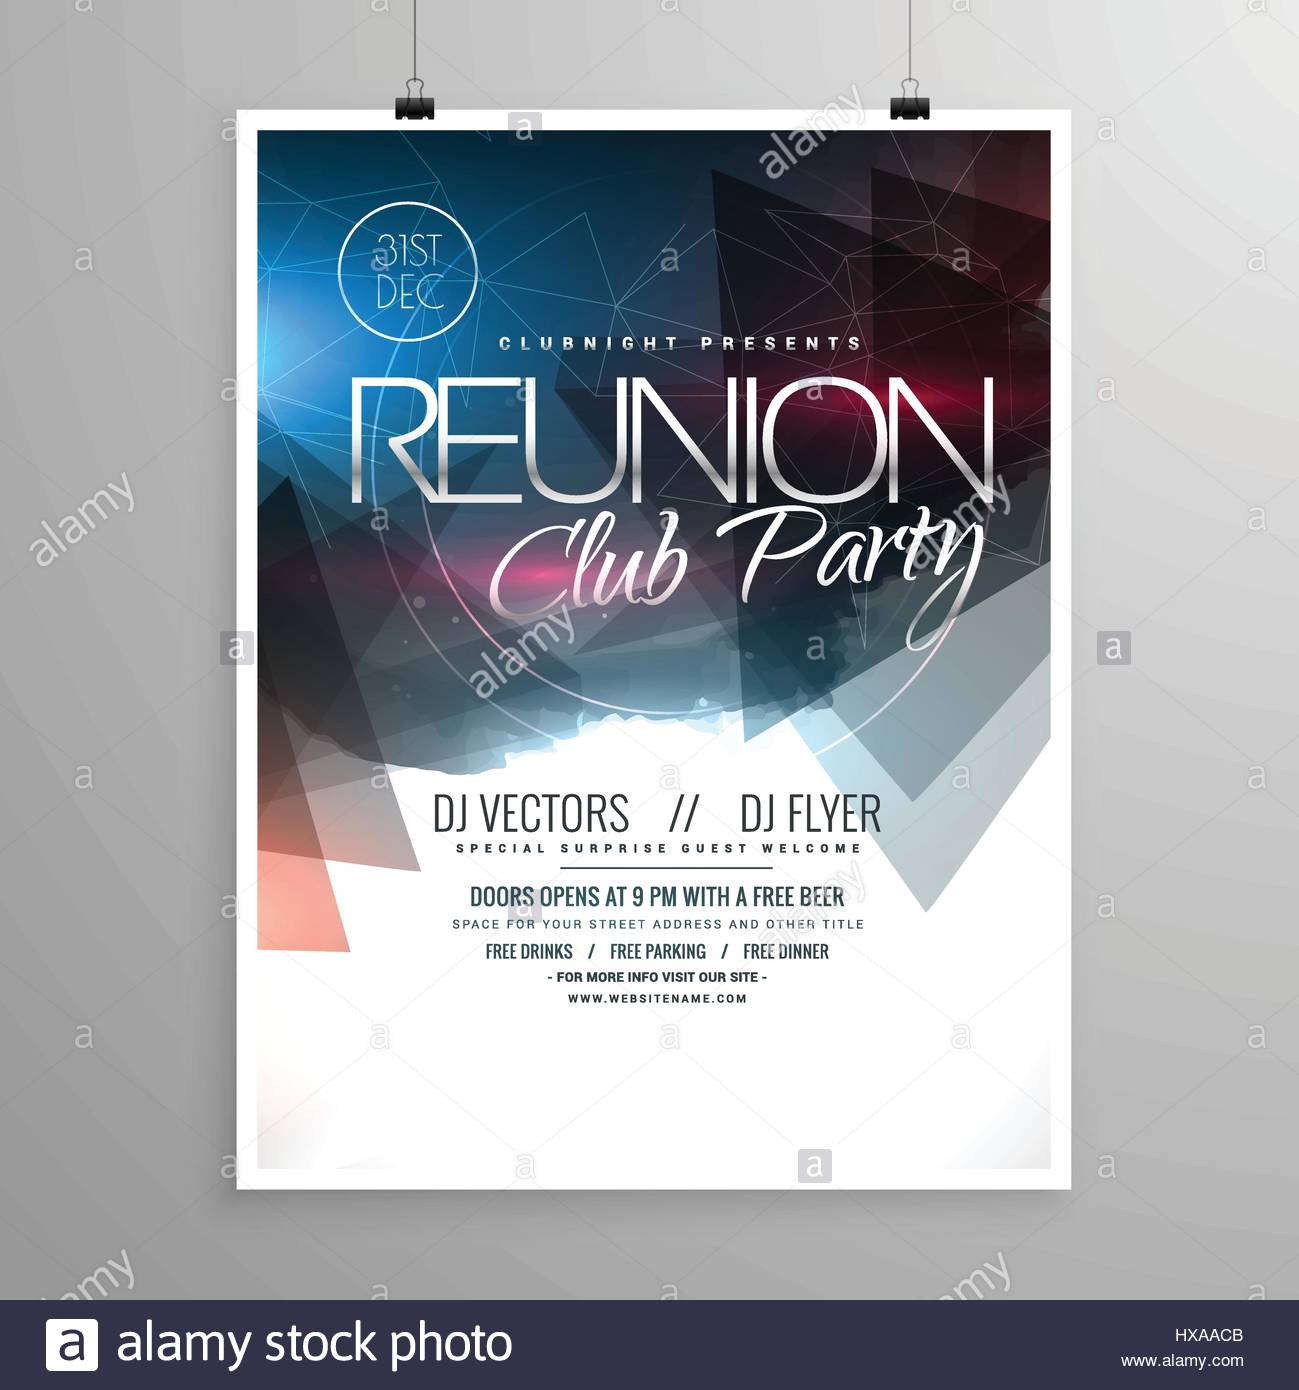 event club party flyer template brochure design stock vector art